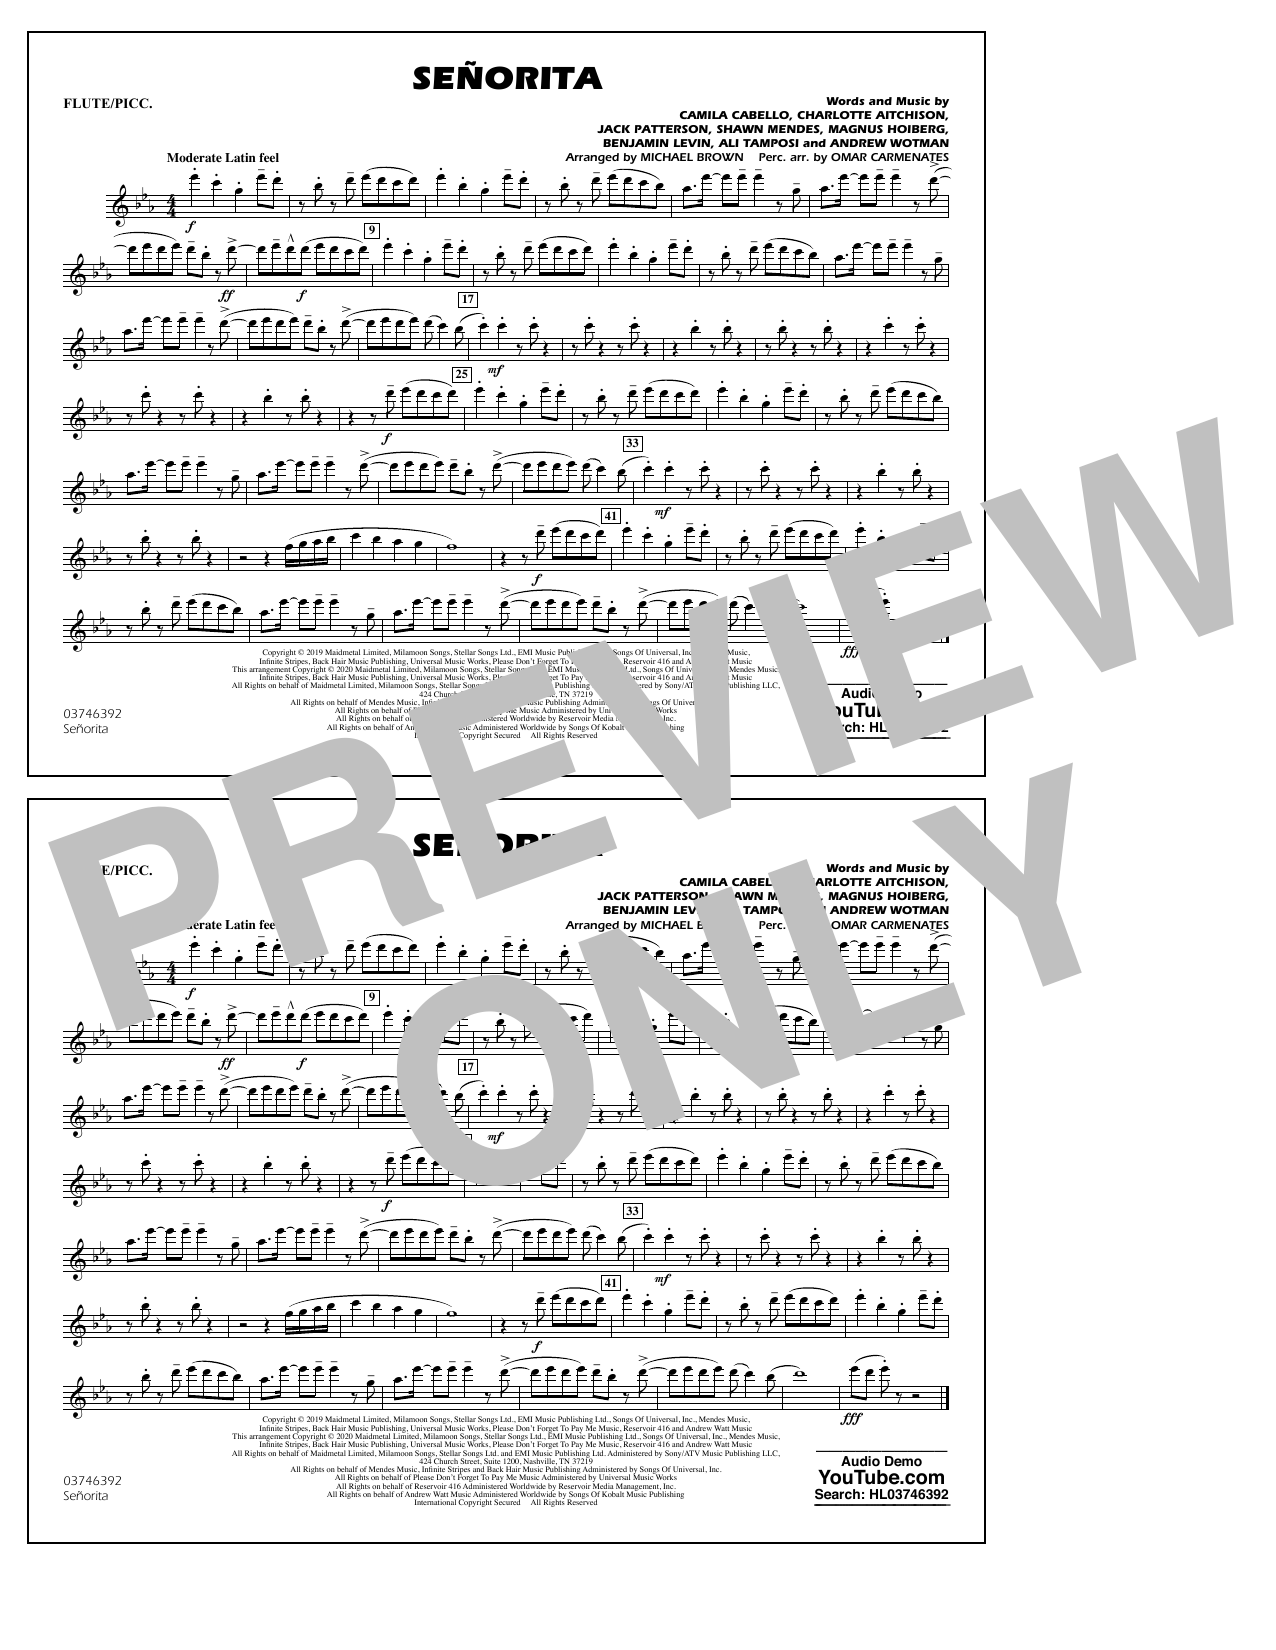 Señorita (arr. Carmenates and Brown) - Flute/Piccolo Sheet Music